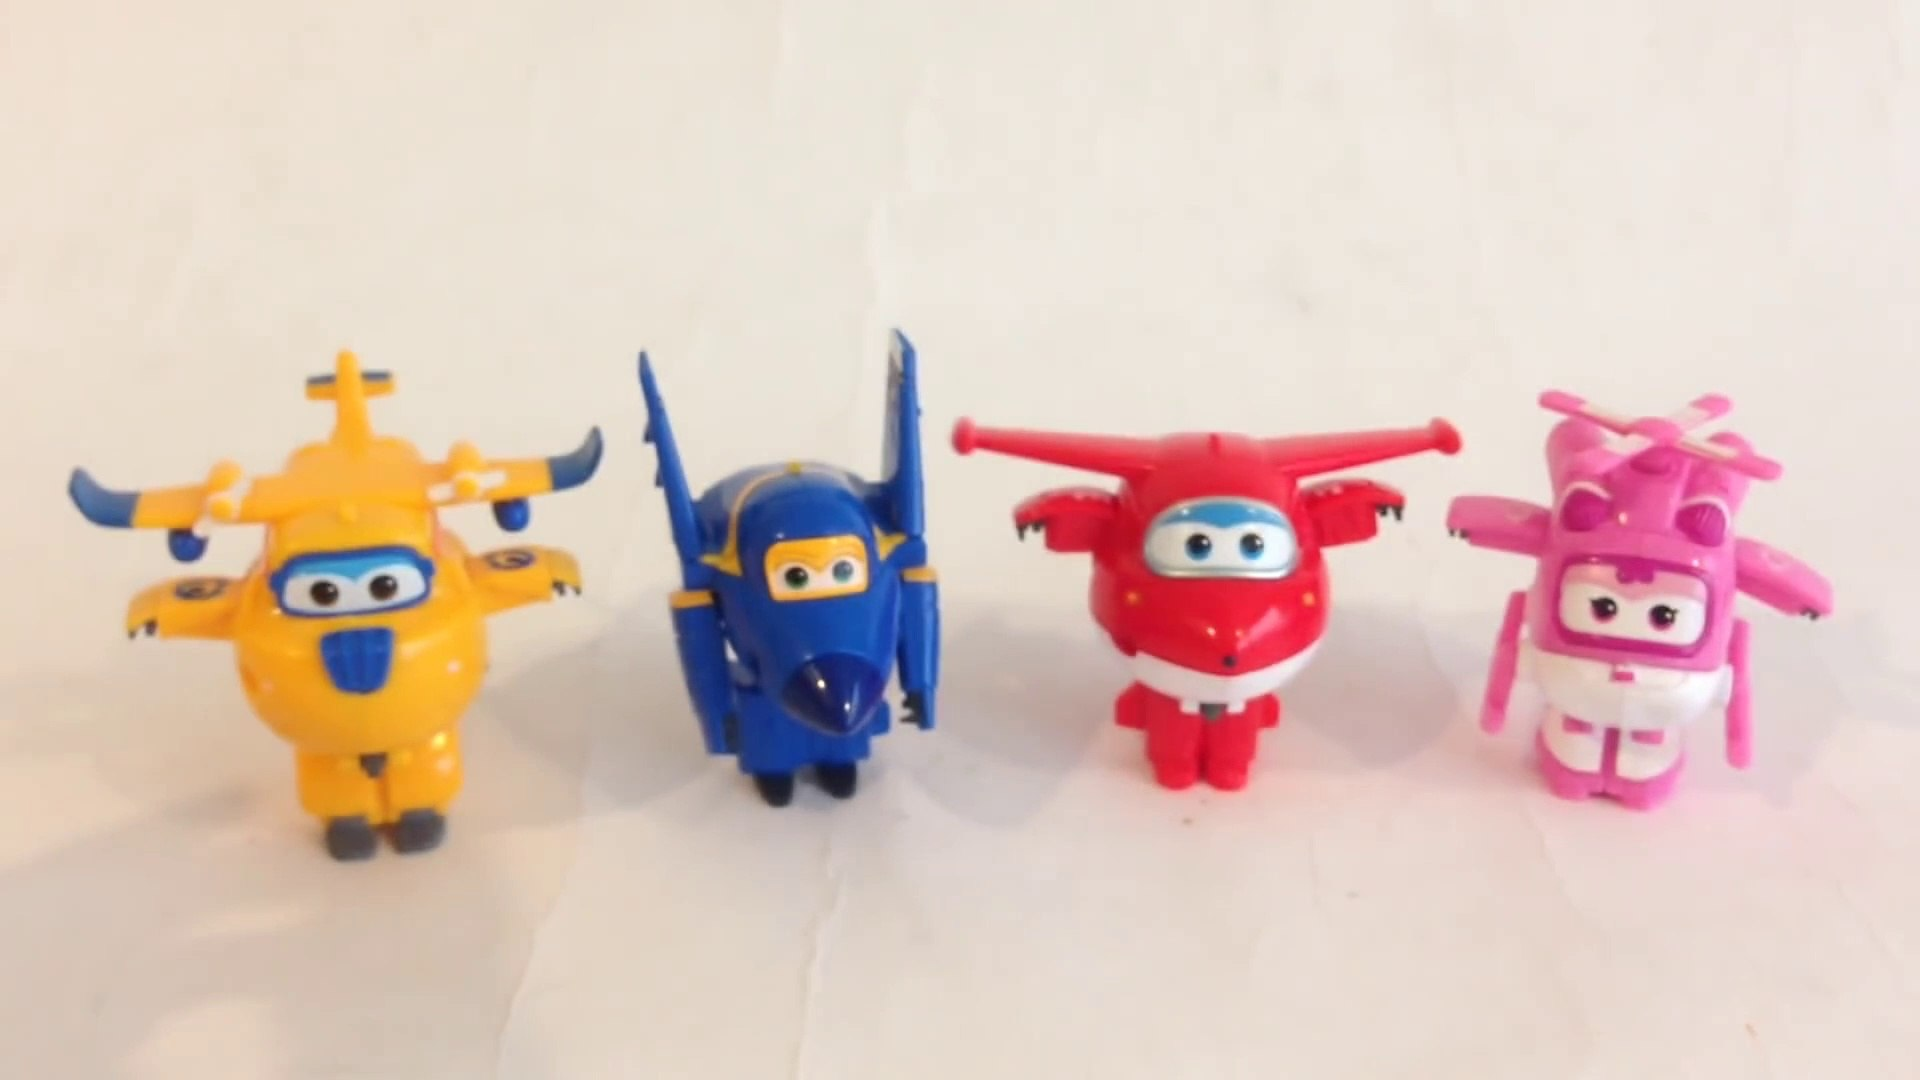 4 Super Wings Mini Transforming Robots Airplane Jett Donnie Jerome Dizzy 출동슈퍼윙스  - Unboxing Review